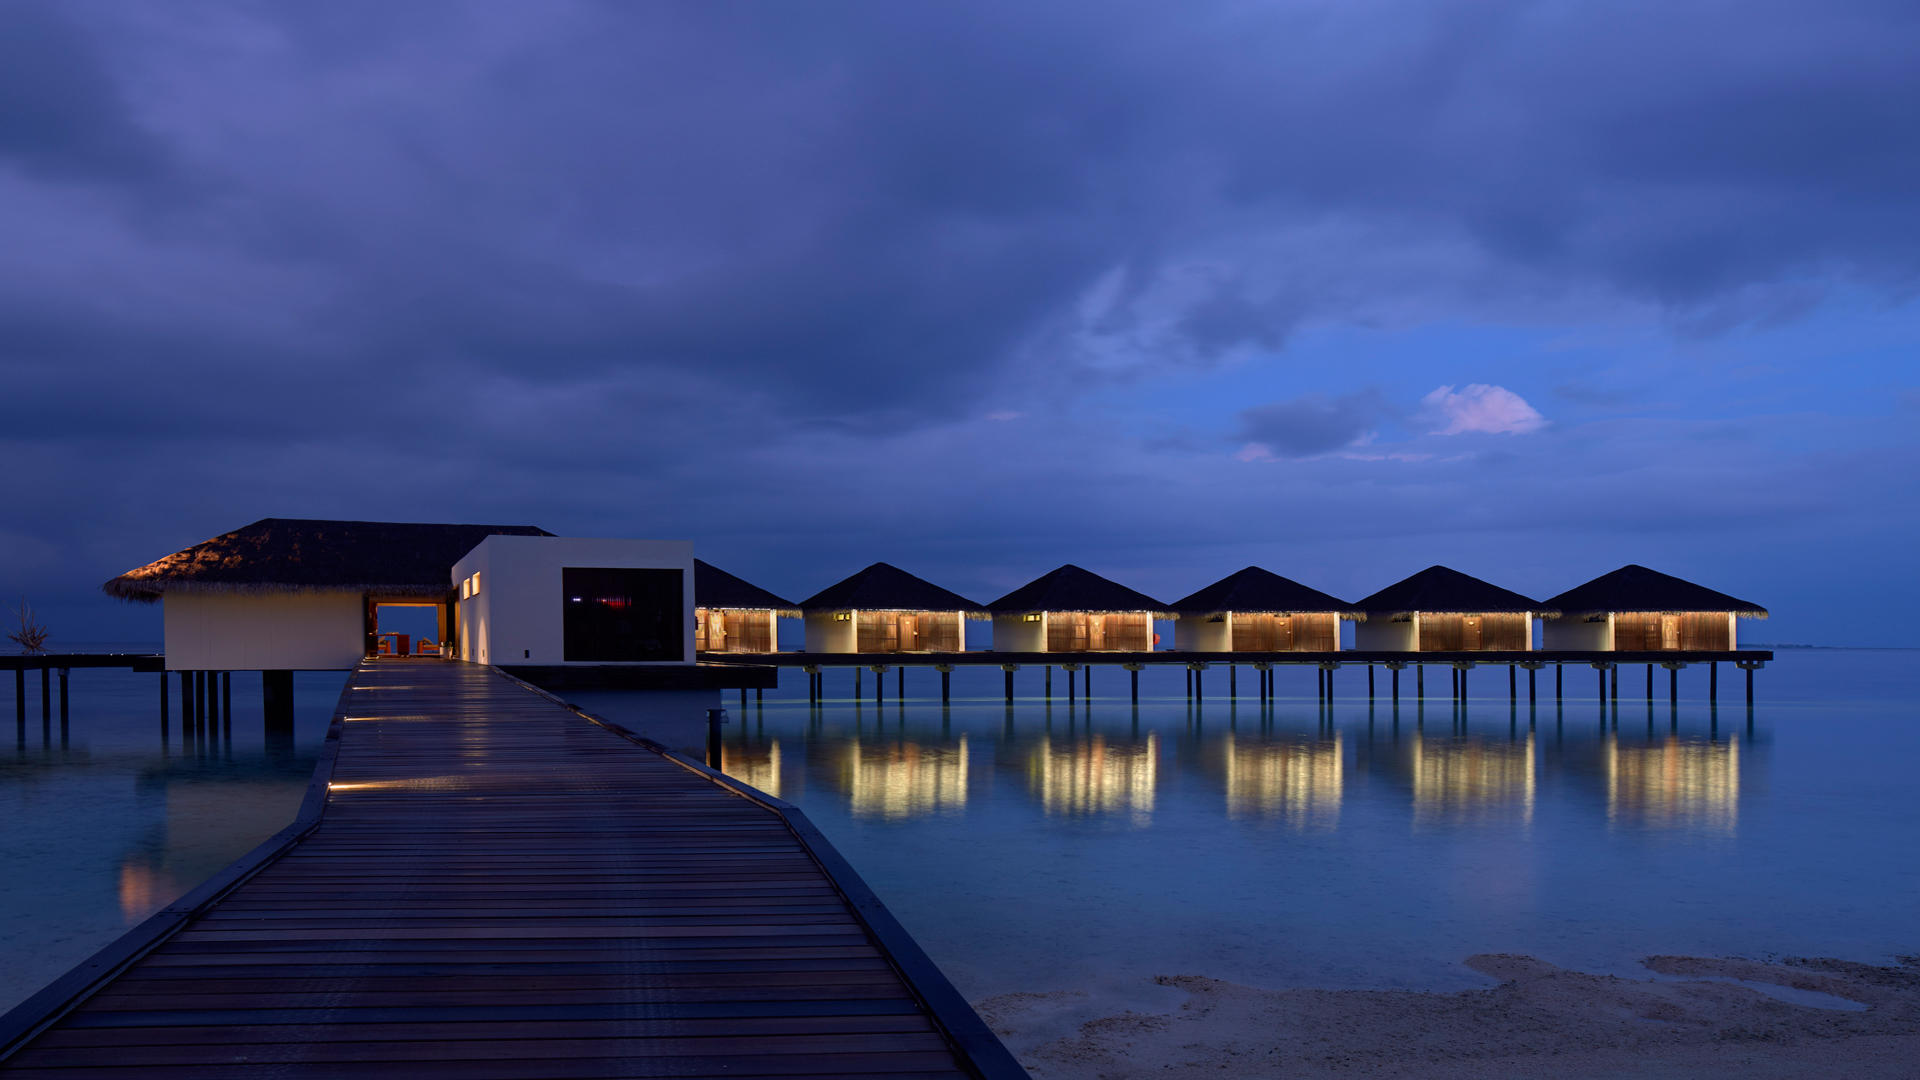 Cenizaro_ResidencesMaldives_The Spa by Clarins Außenansicht